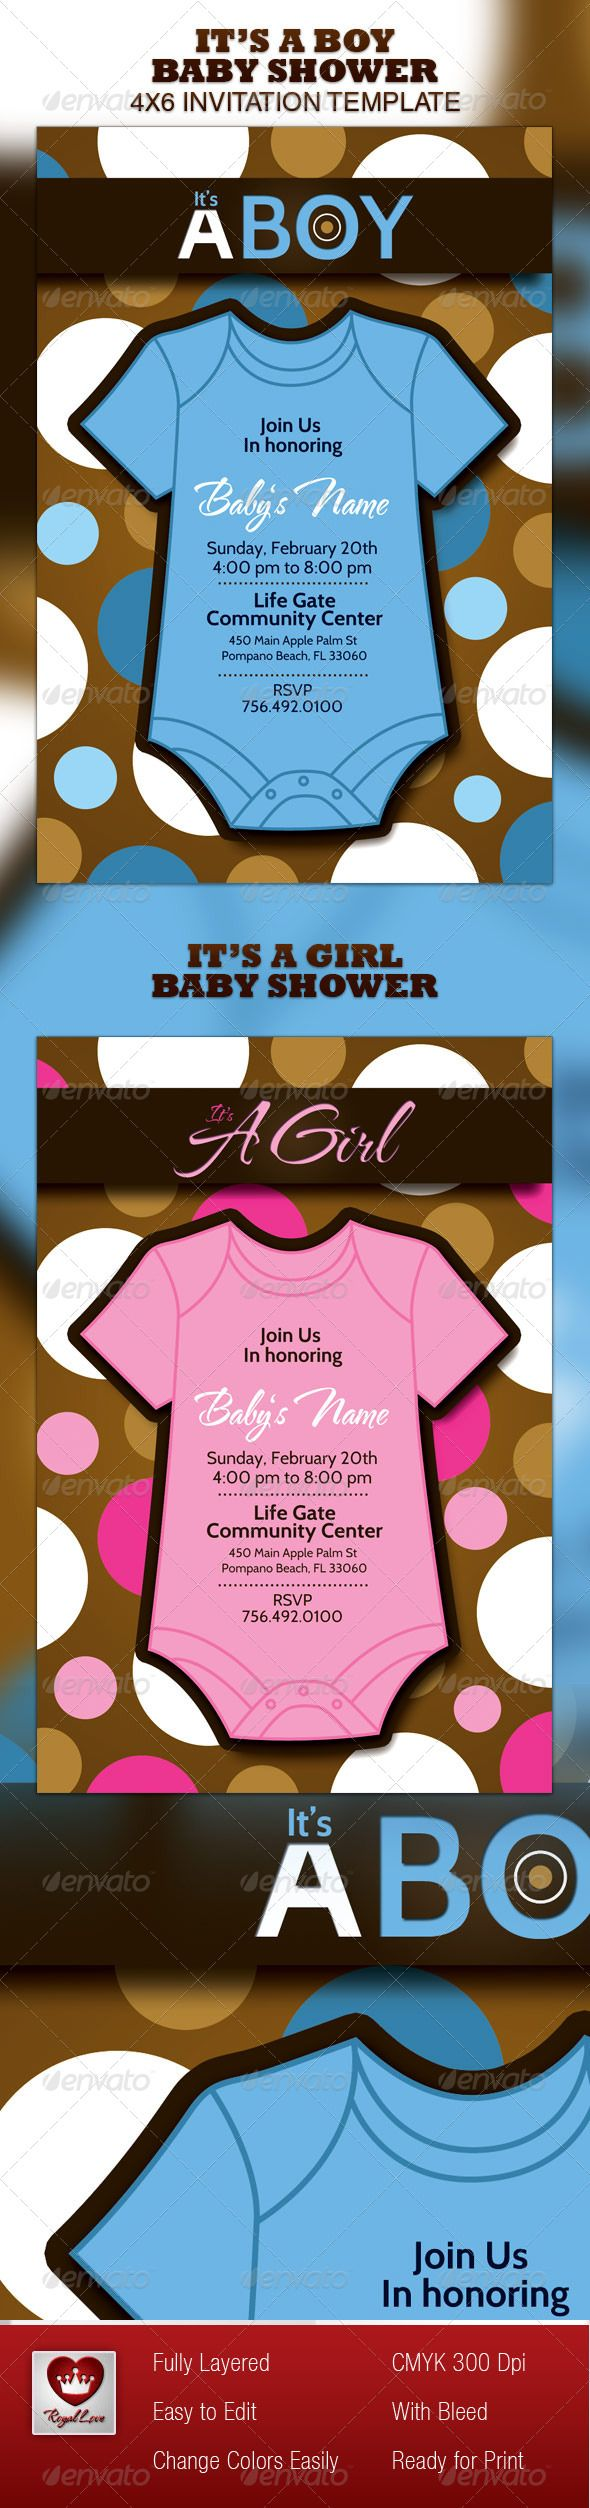 baby shower flyer templates vatoz atozdevelopment co